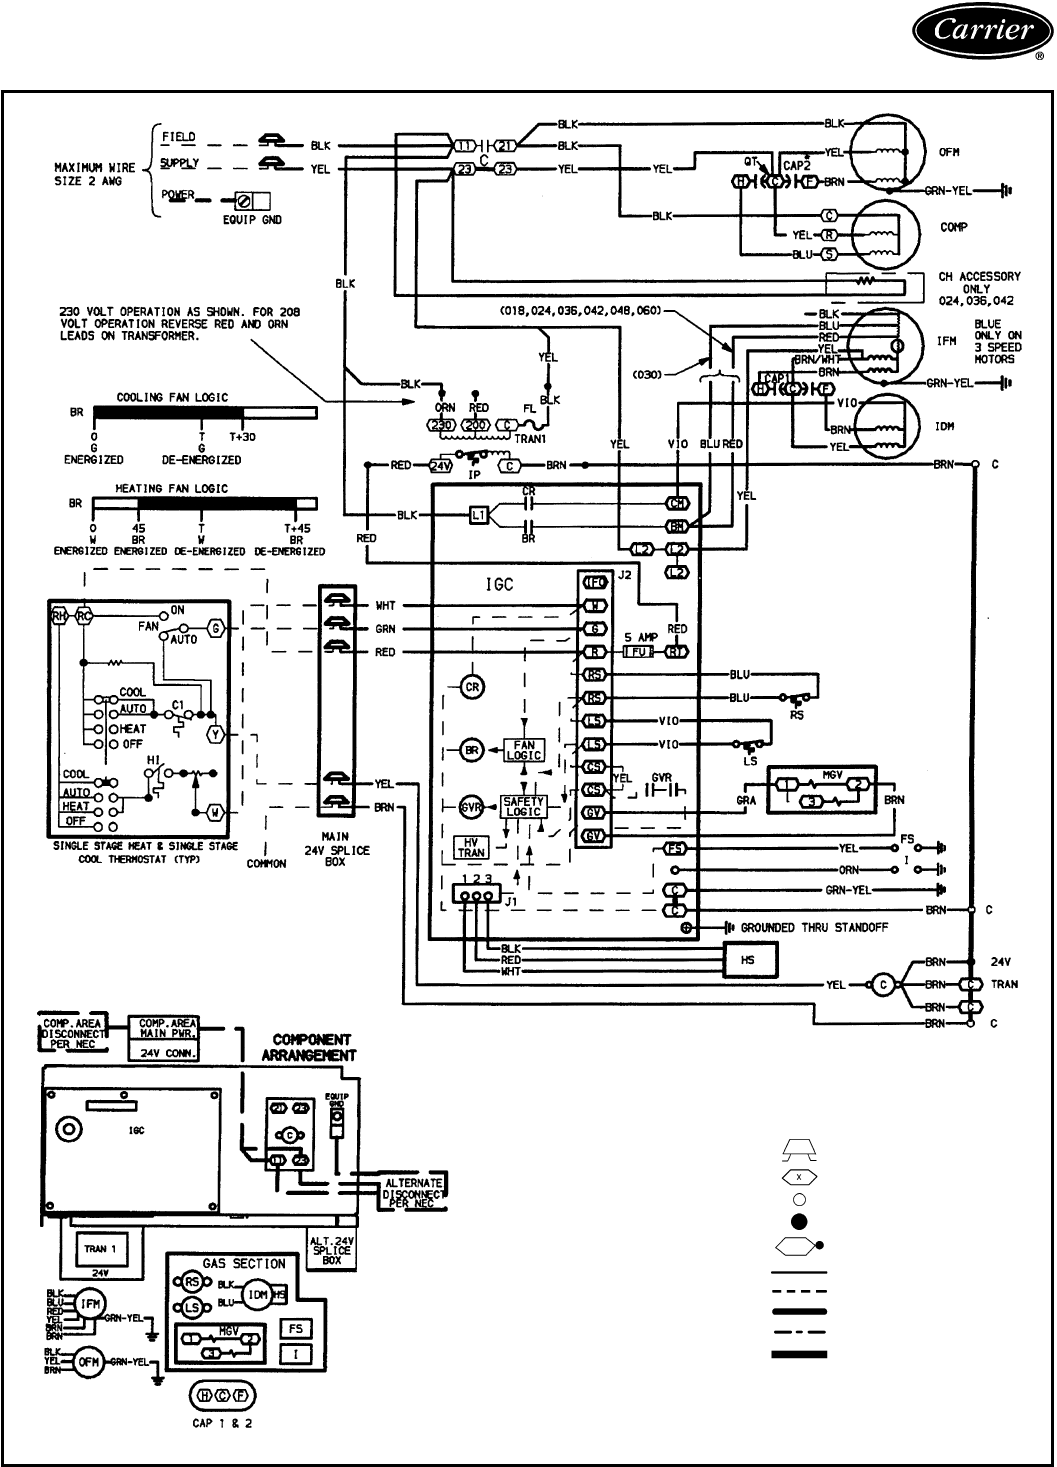 relay switch hs code